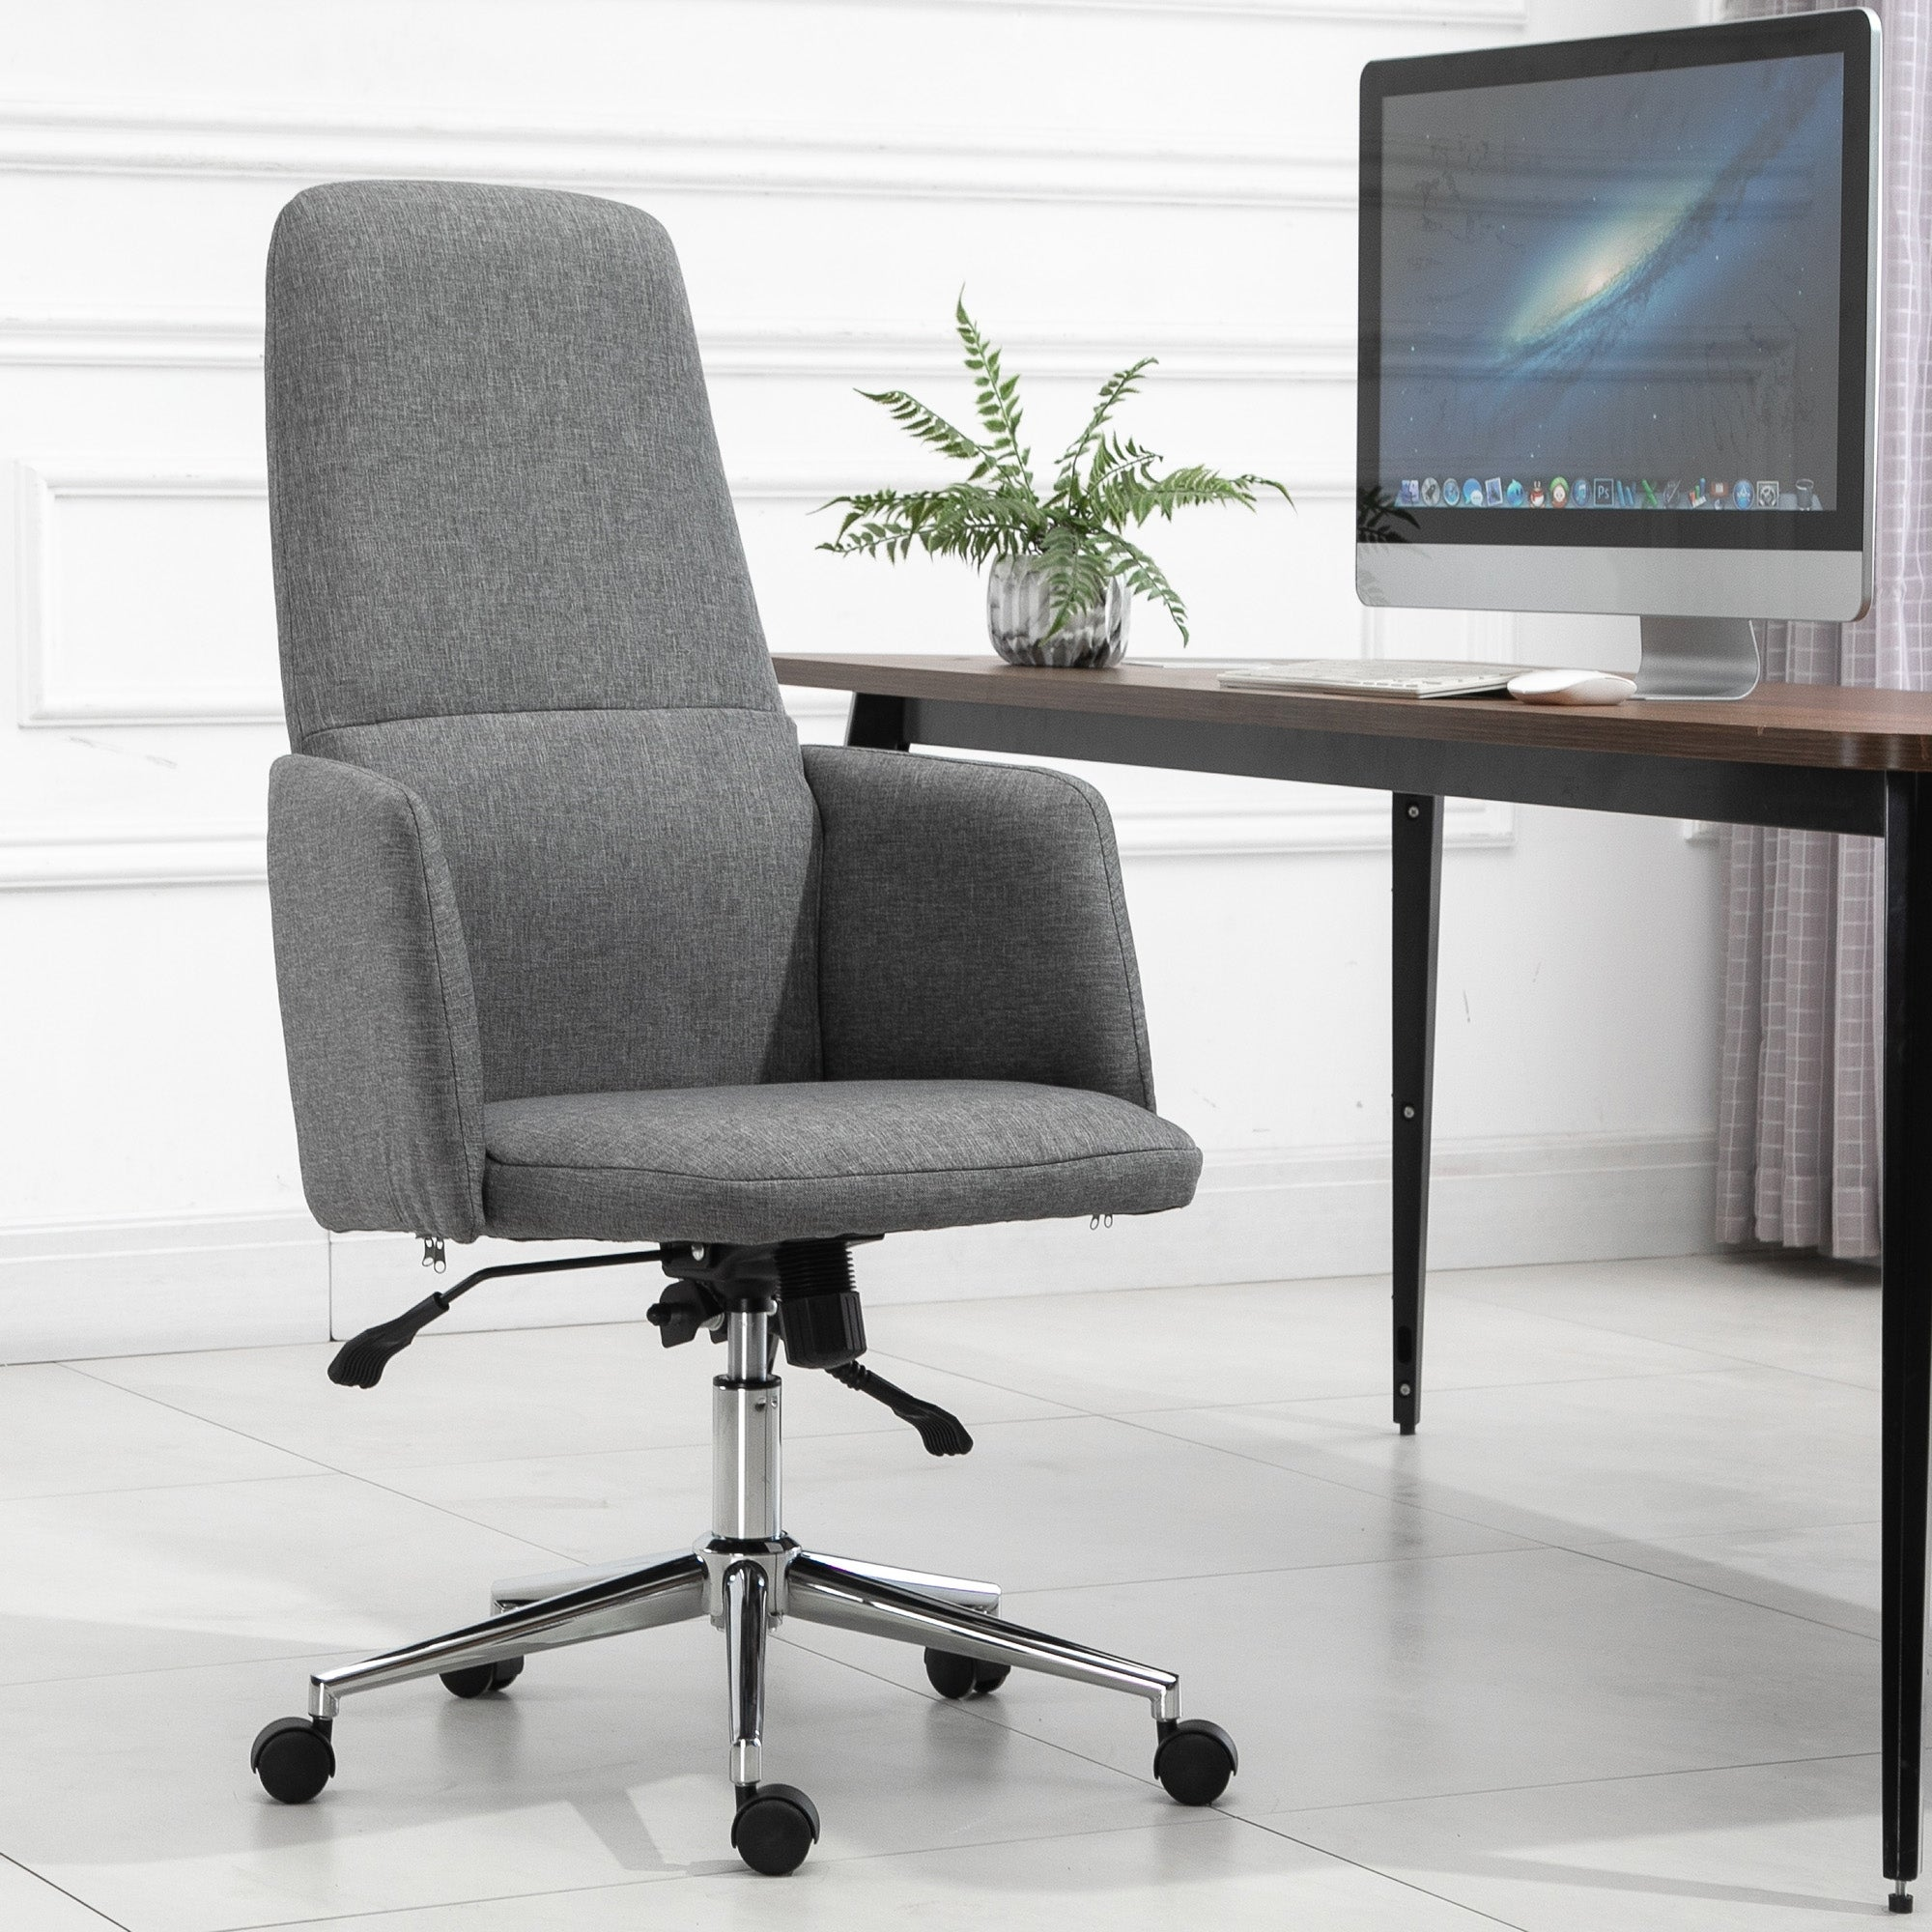 Vinsetto Soho Style High Back Office Chair Breathable Fabric Computer Home Rocking With Wheels Grey Overstock 32369129